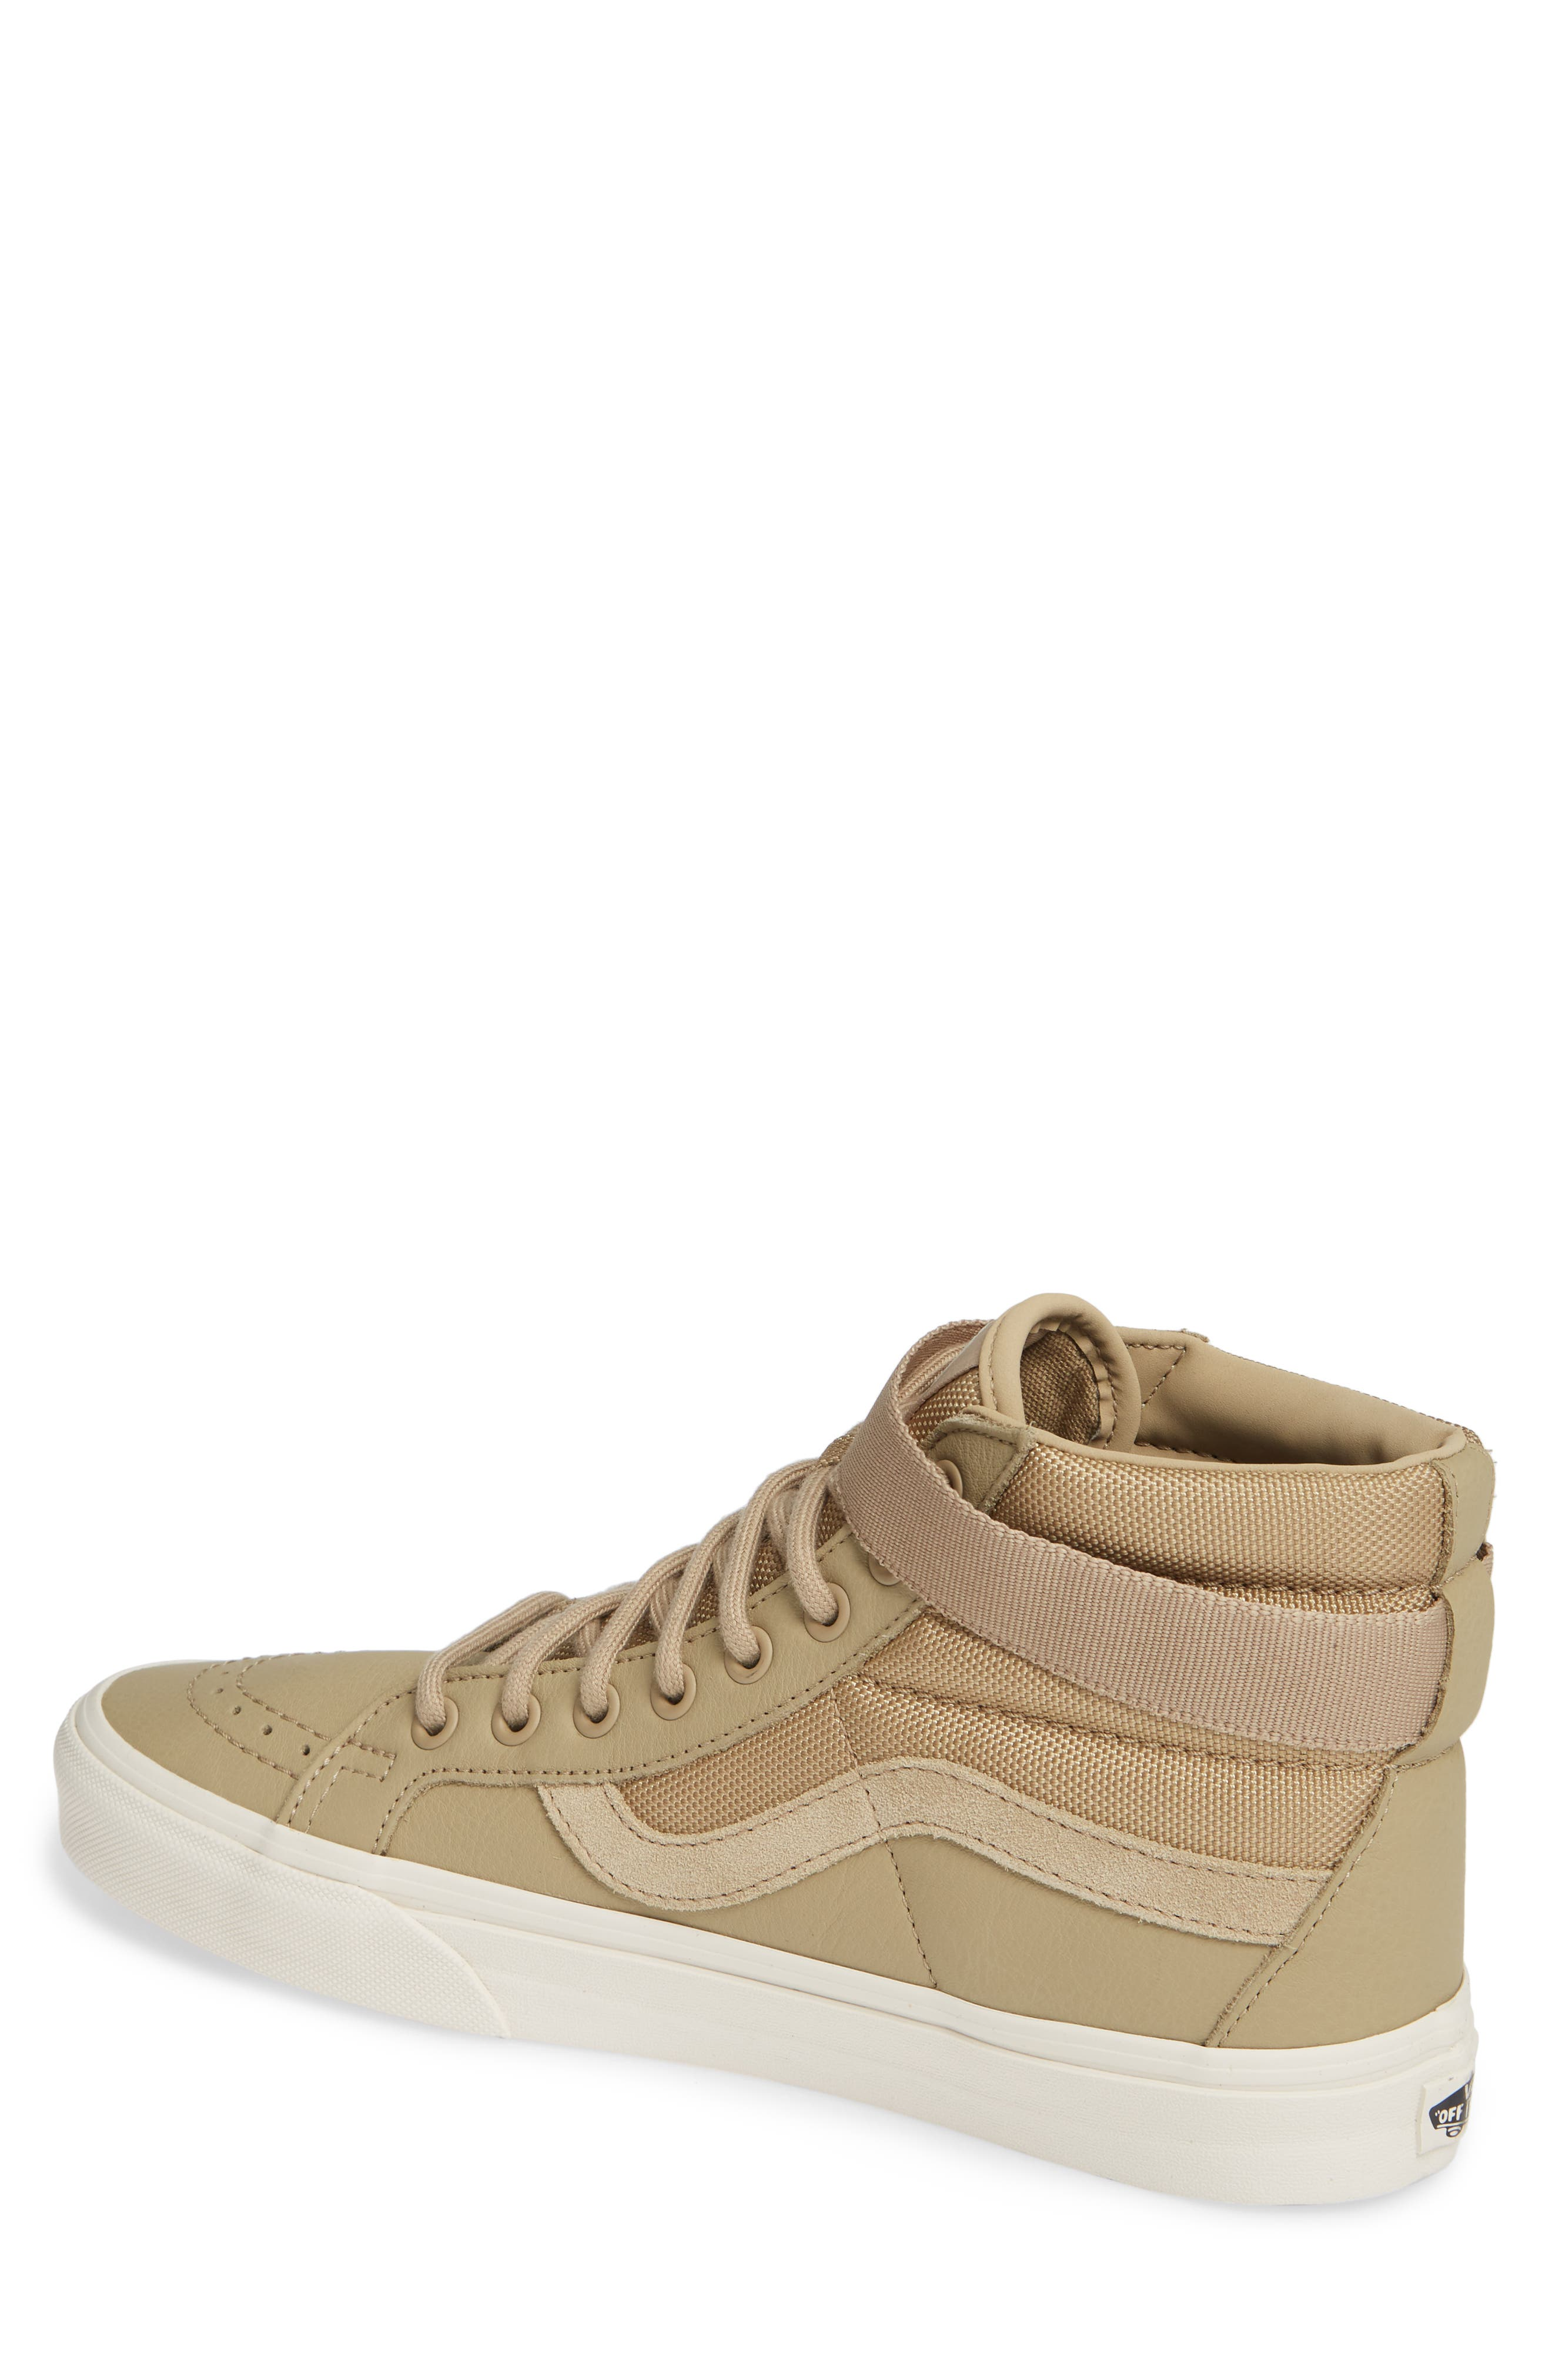 VANS,                             Sk8-Hi Reissue Strap Sneaker,                             Alternate thumbnail 2, color,                             260